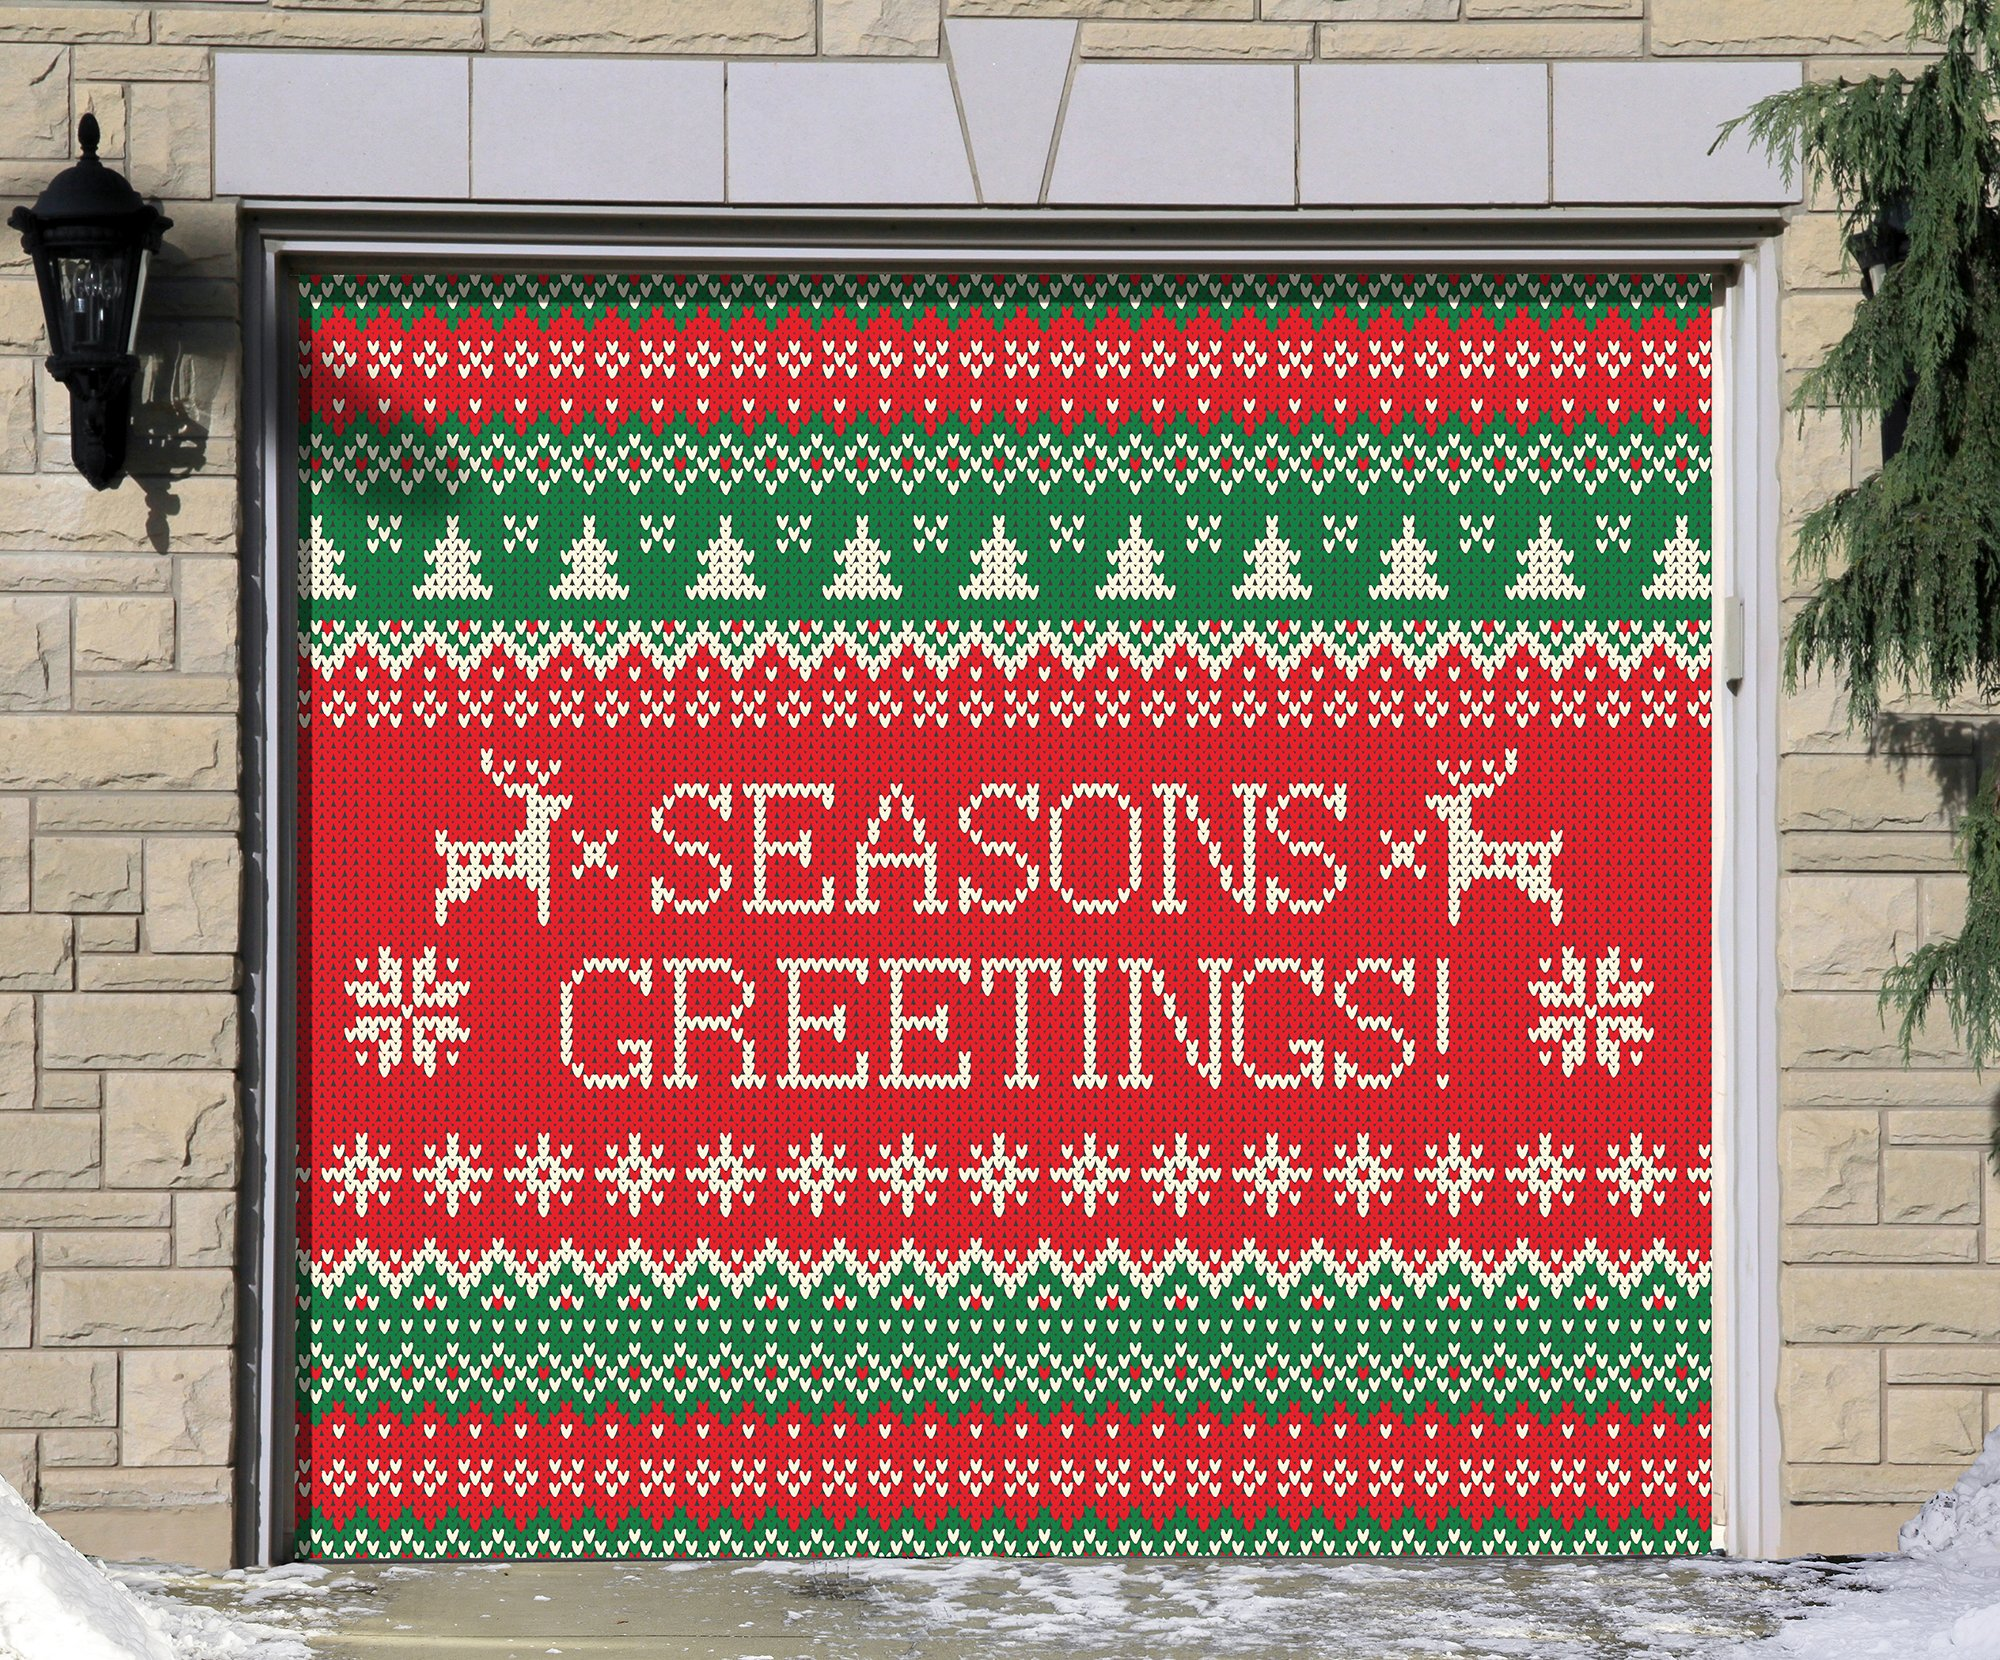 Outdoor Christmas Holiday Garage Door Banner Cover Mural Décoration - Ugly Christmas Sweater Seasons Greetings - Outdoor Christmas Holiday Garage Door Banner Décor Sign 7'x8'